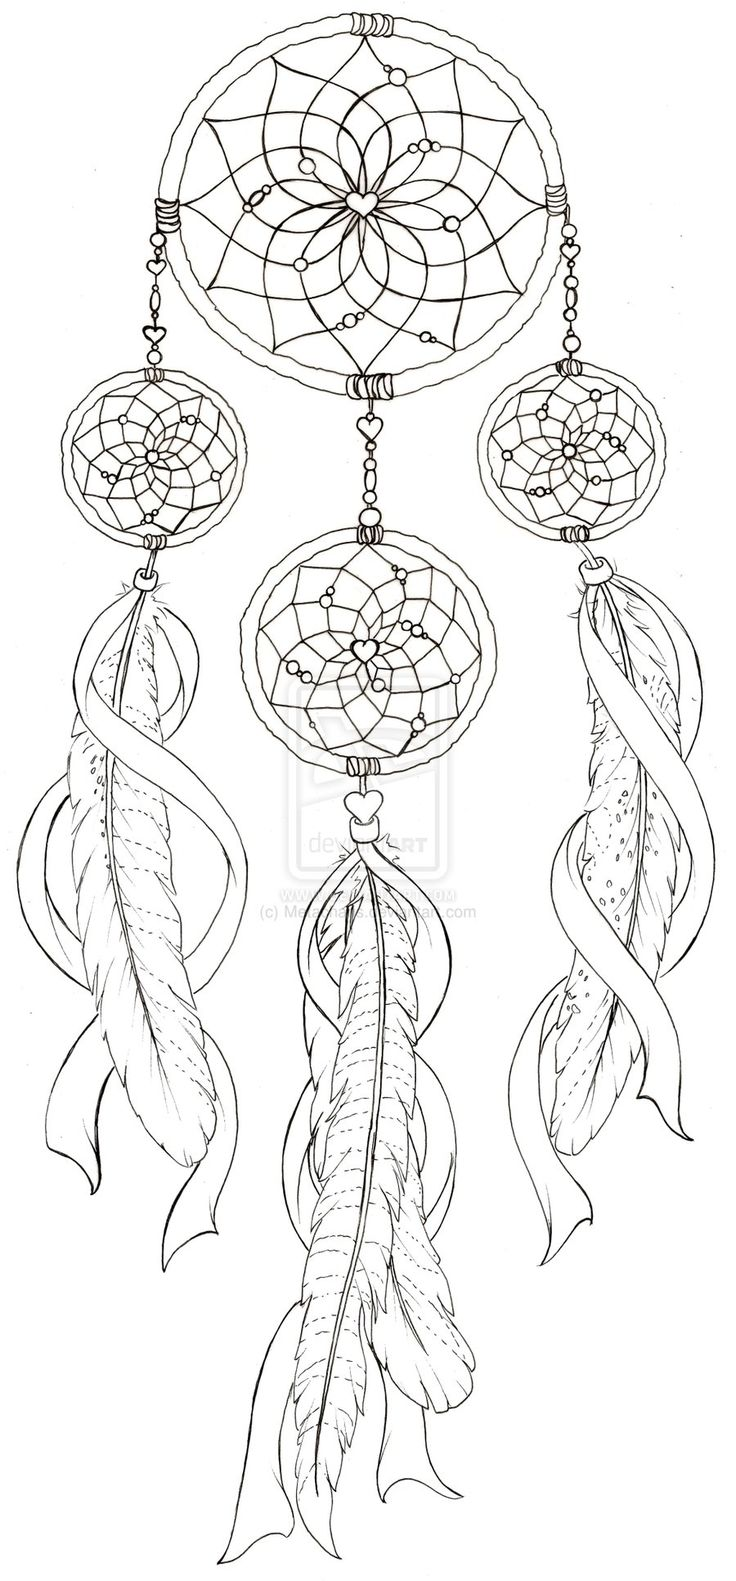 Coloring pages dream catchers - Dream Catcher With Pheasant Feather Tattoo By Metacharis On Deviantart